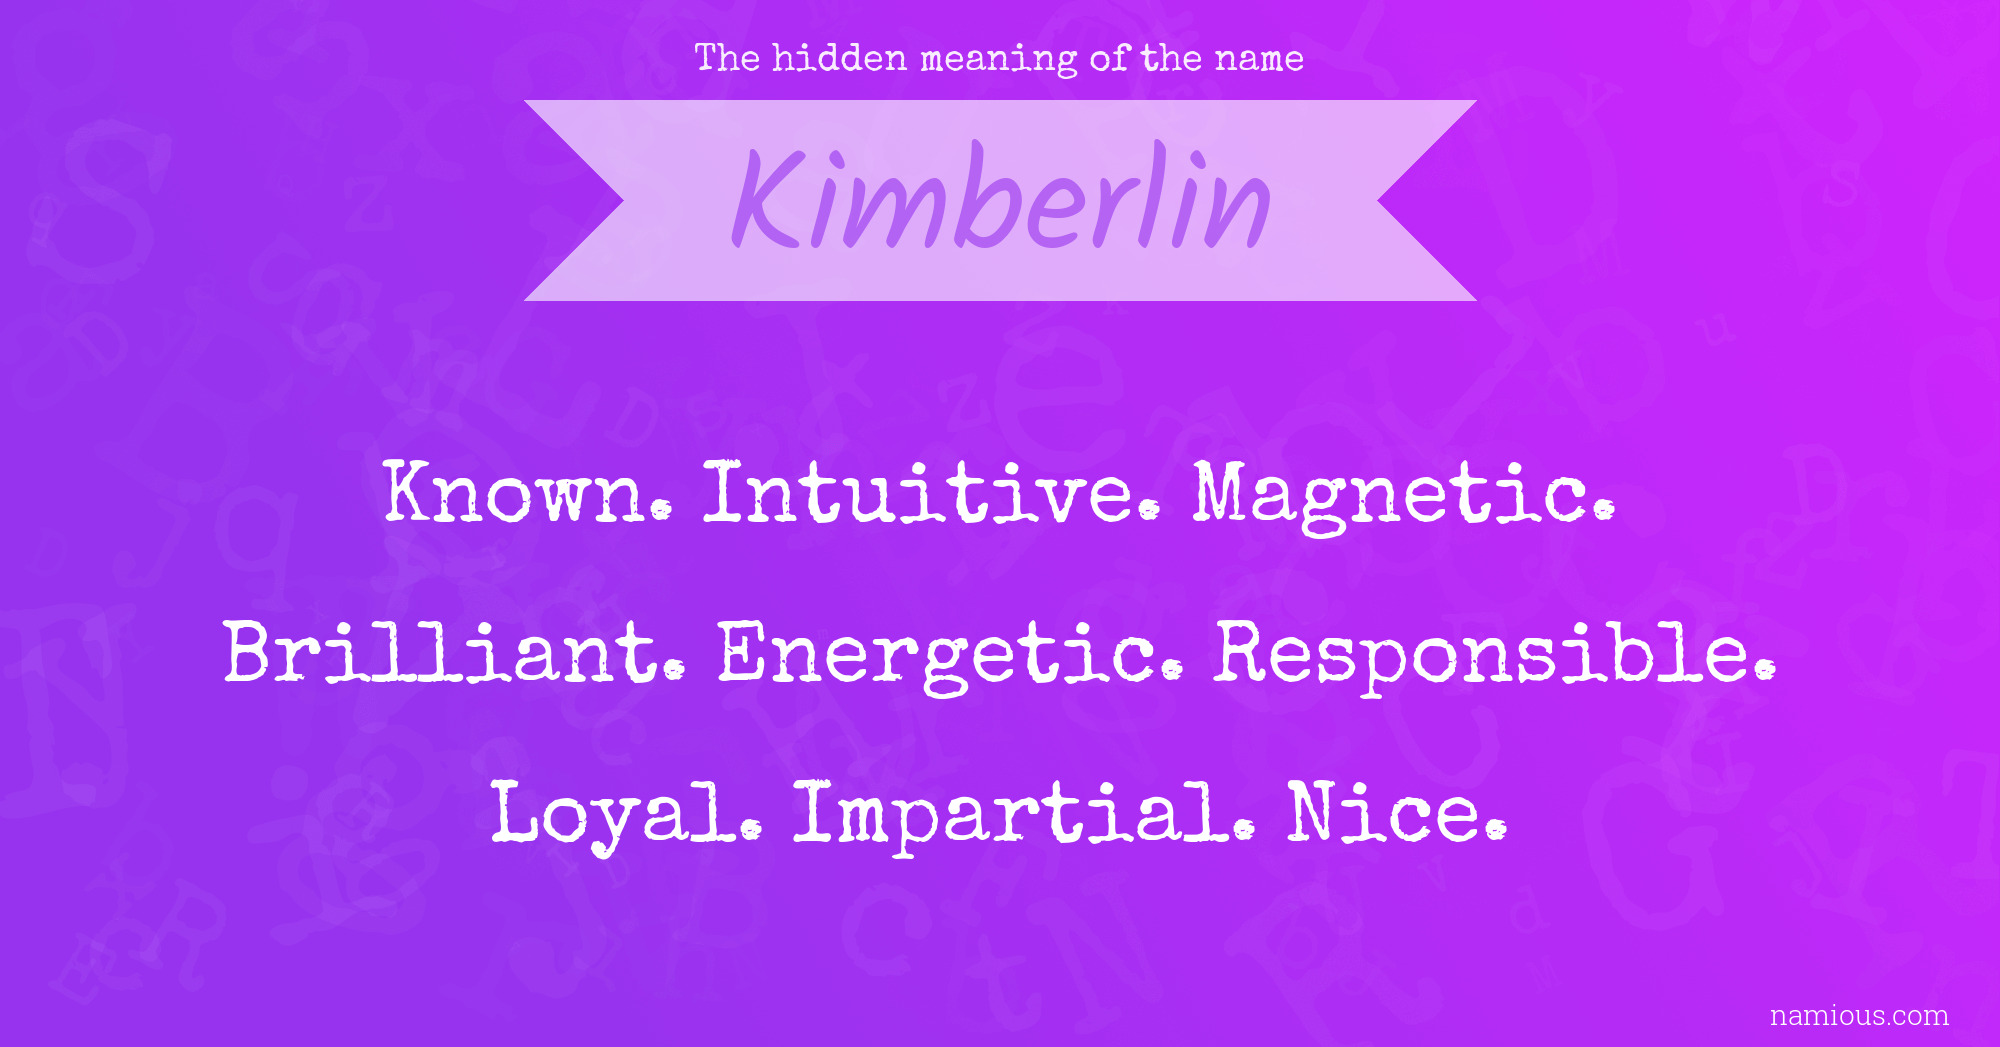 The hidden meaning of the name Kimberlin | Namious